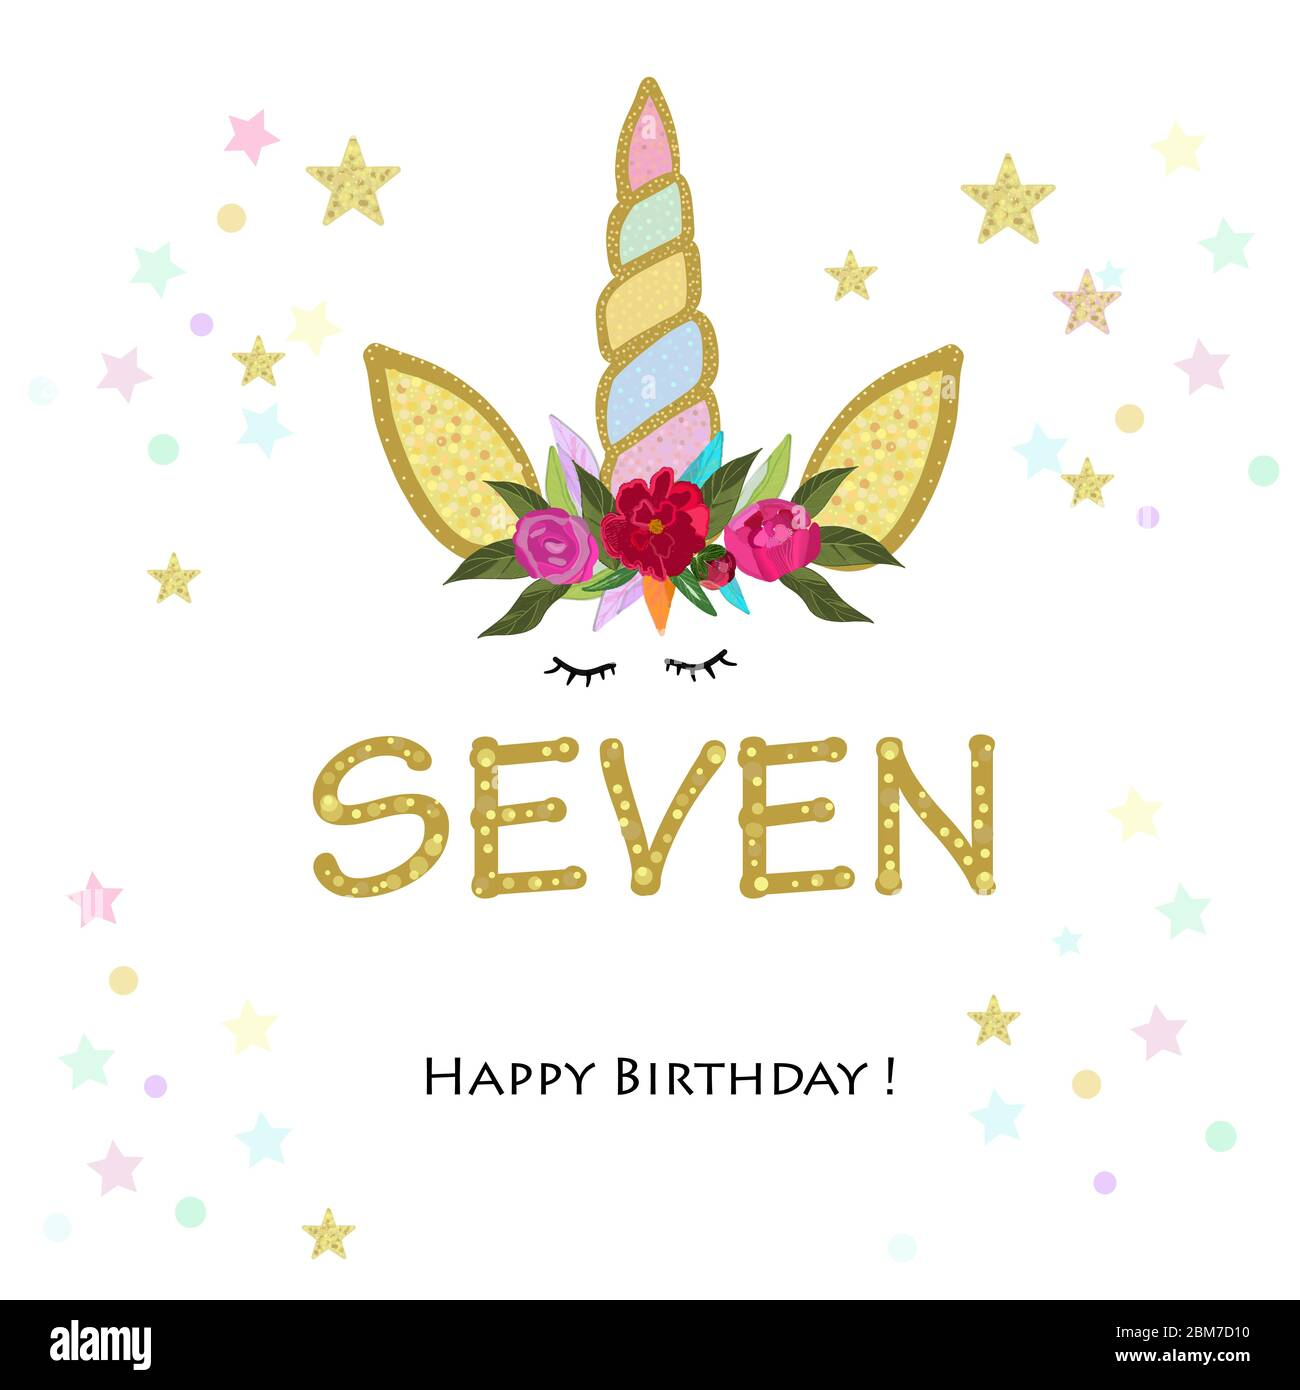 https www alamy com seventh birtday candle seven unicorn birthday invitation party invitation greeting card image356664364 html